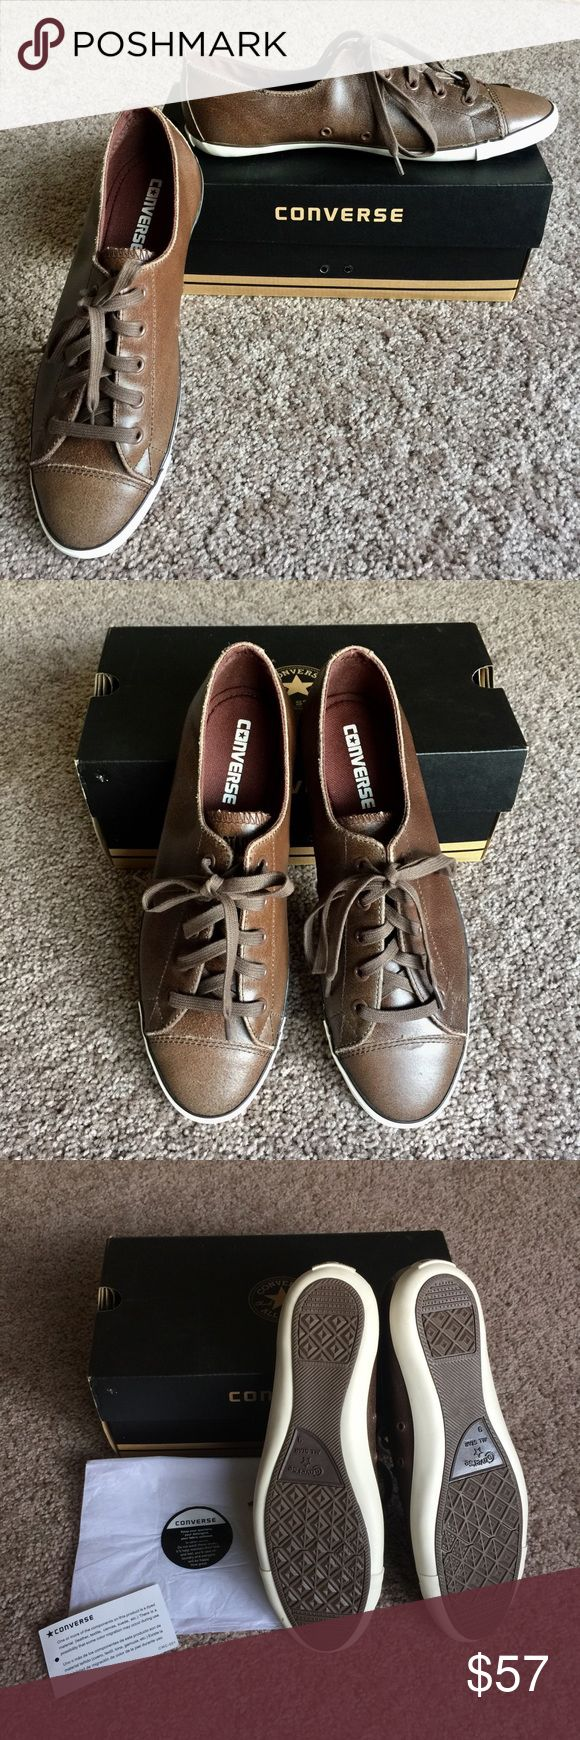 Nice Leather Converse all star shoe. Nice leather Converse shoe. Material leather, textile, canvas , suede, etc. Size 9 woman brown color. Brand new never used. With box MUST HAVE !!!! Converse Shoes Sneakers